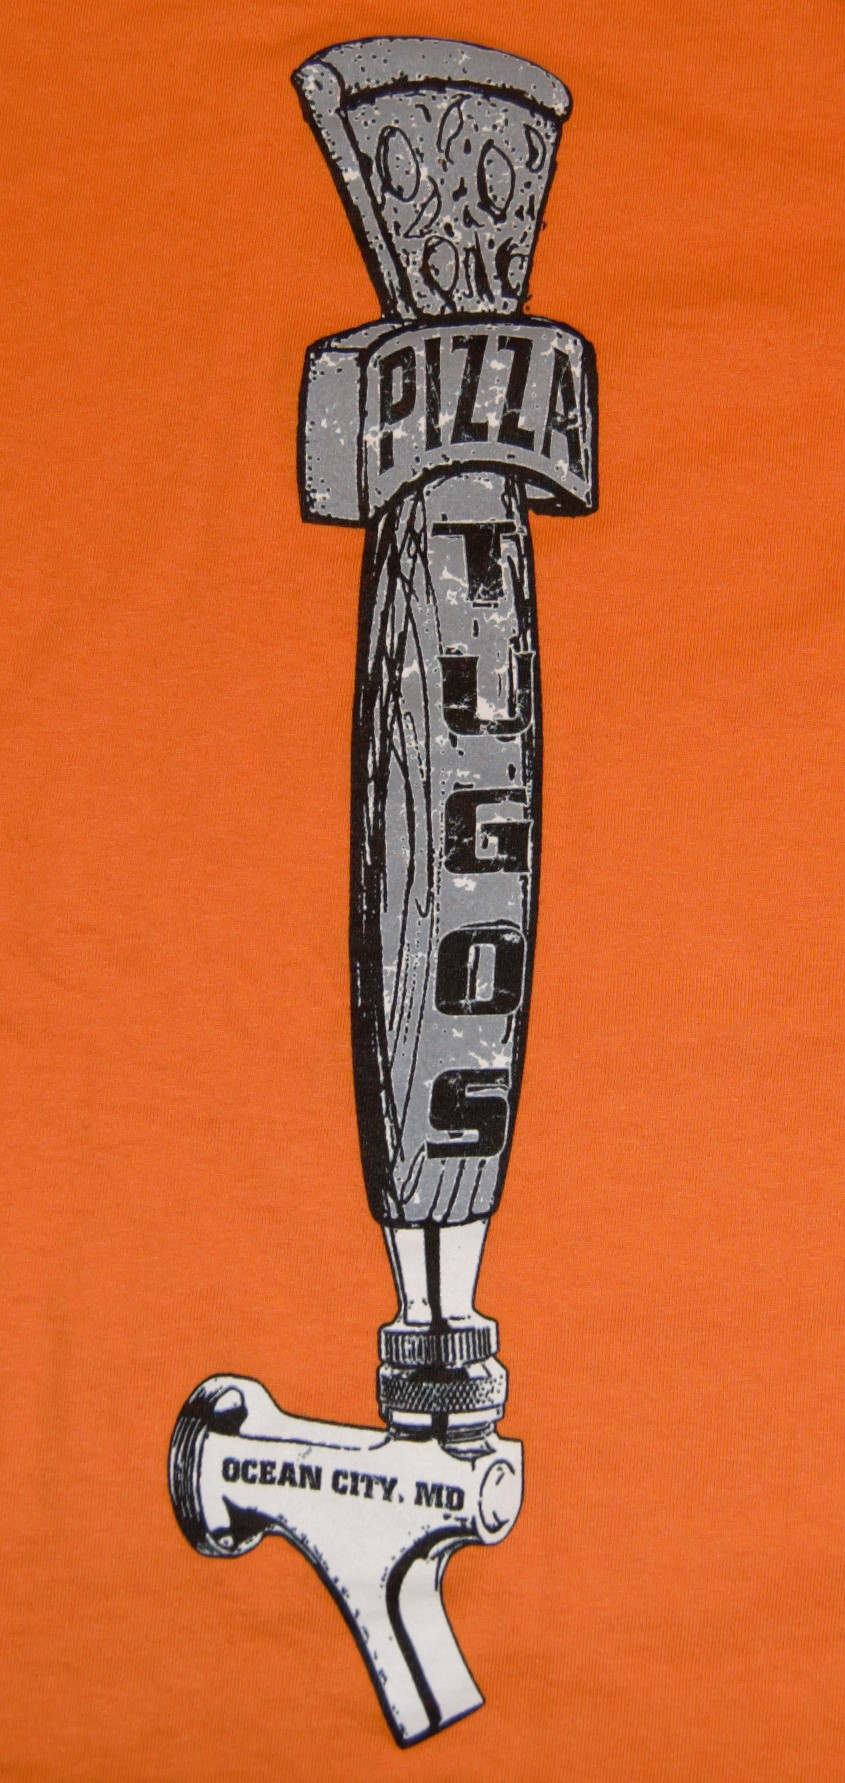 Tugos Taproom Beer Tap Orange Back of Shirt Close Up